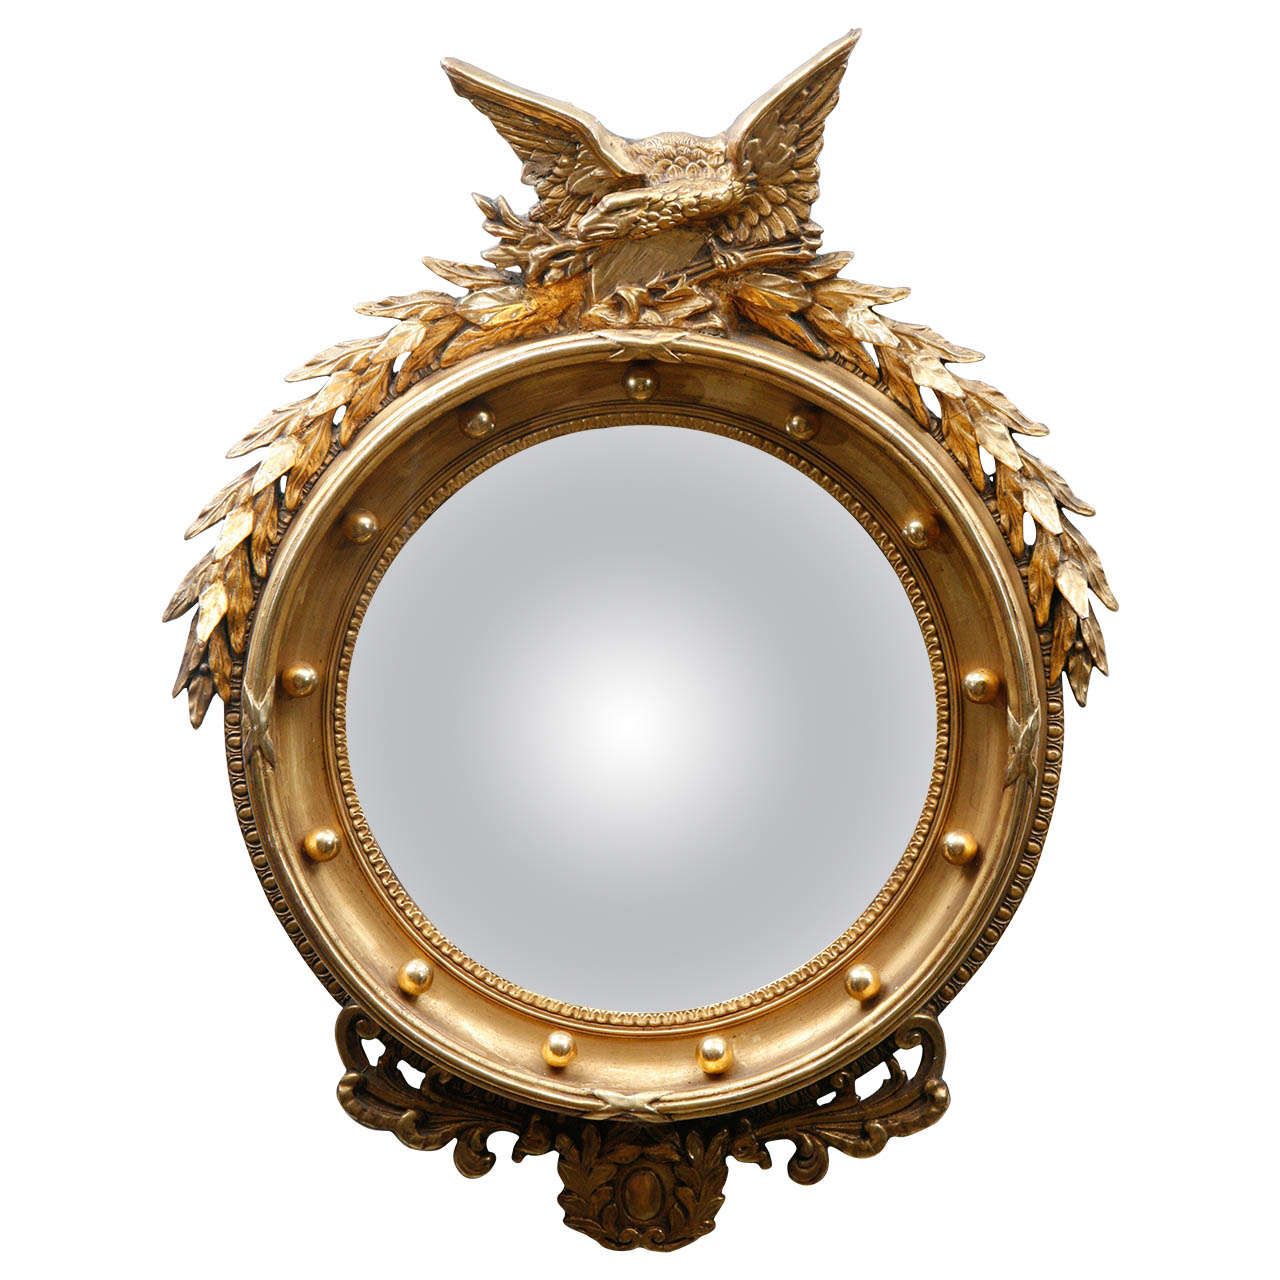 Early 1900 39 s federal convex mirror w eagle at 1stdibs for Convex mirror for home